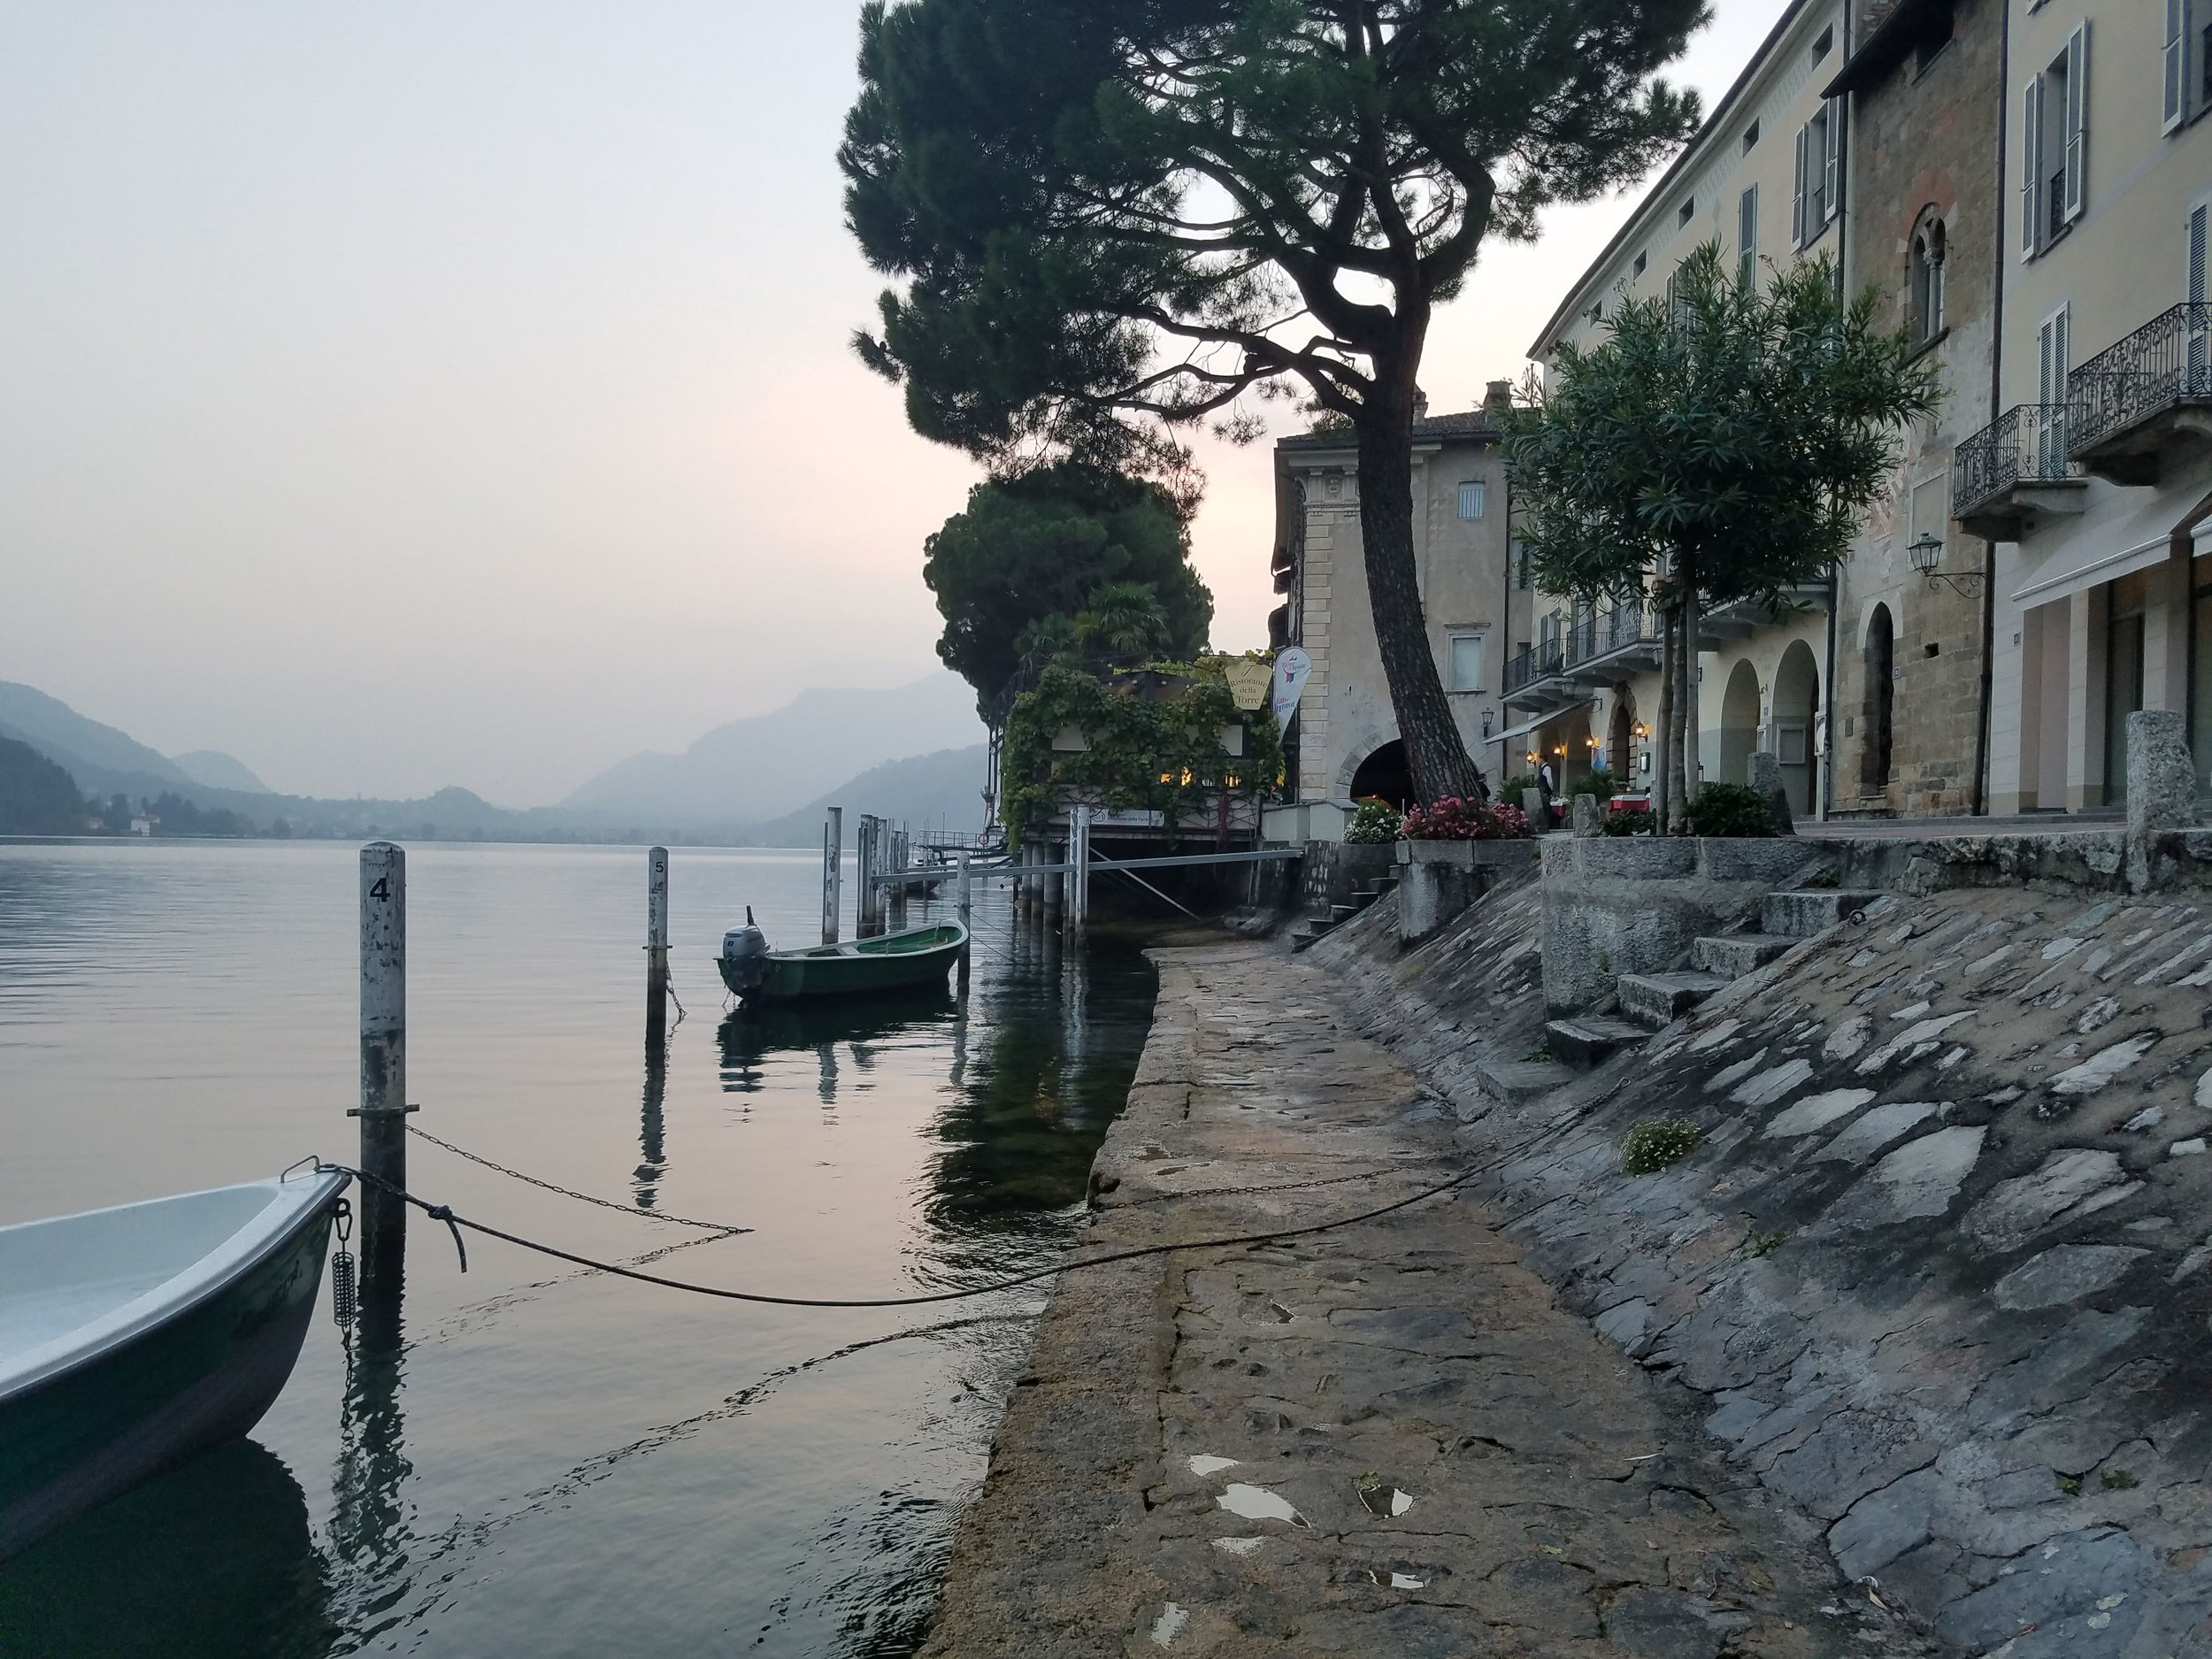 Morcote, Switzerland on the edge of Lake Lugano. The town borders Italy and has some incredible cuisine for such a small place.